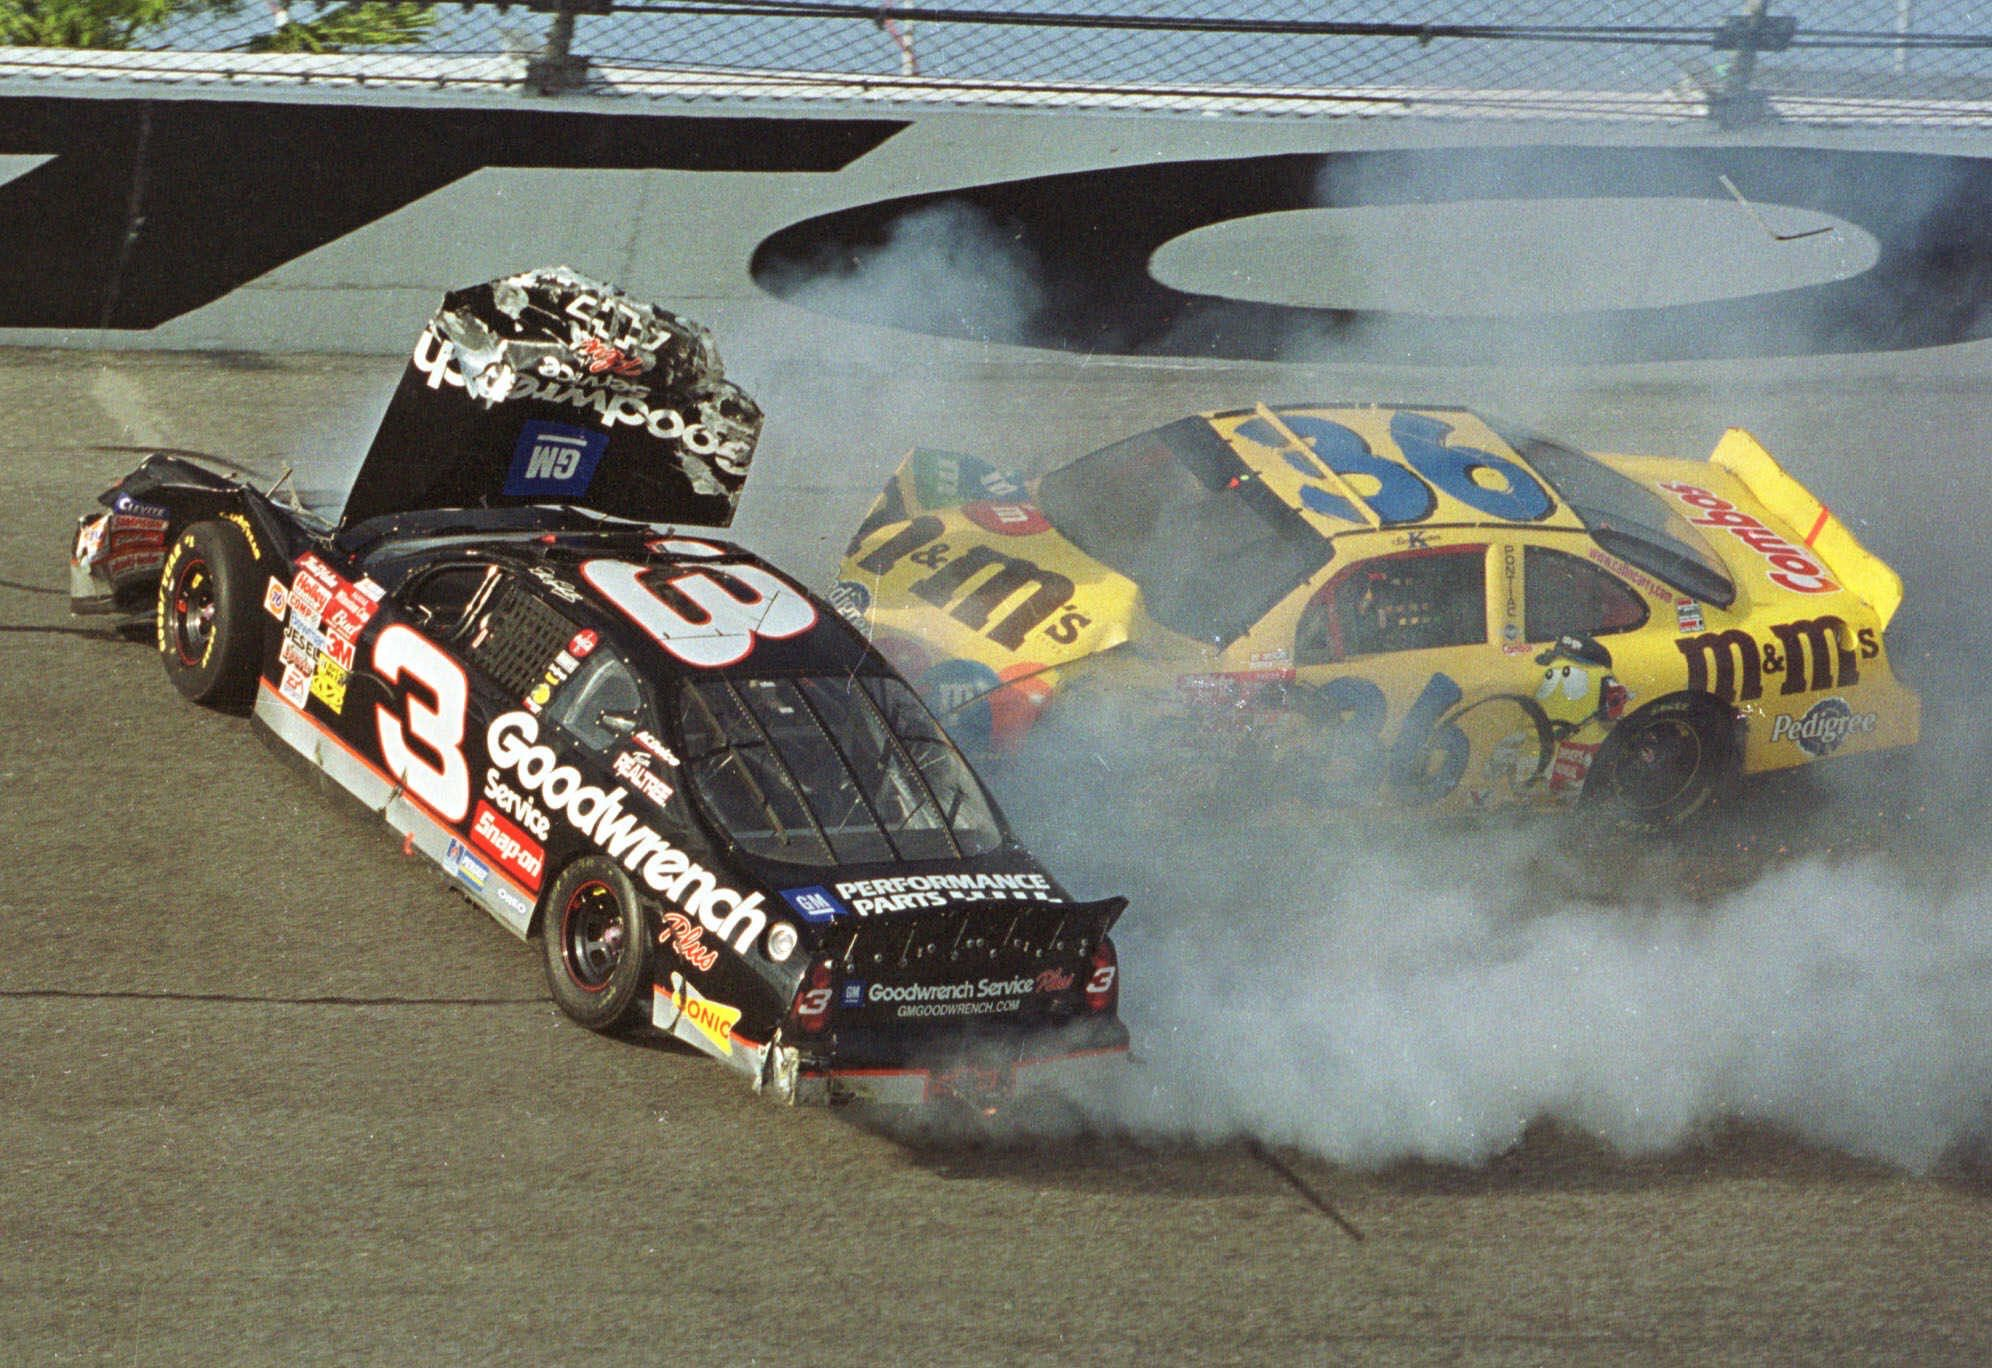 Racing Loses A Giant The Death Of Nascar Driver Dale Earnhardt At The Daytona 500 In 2001 Pennlive Com